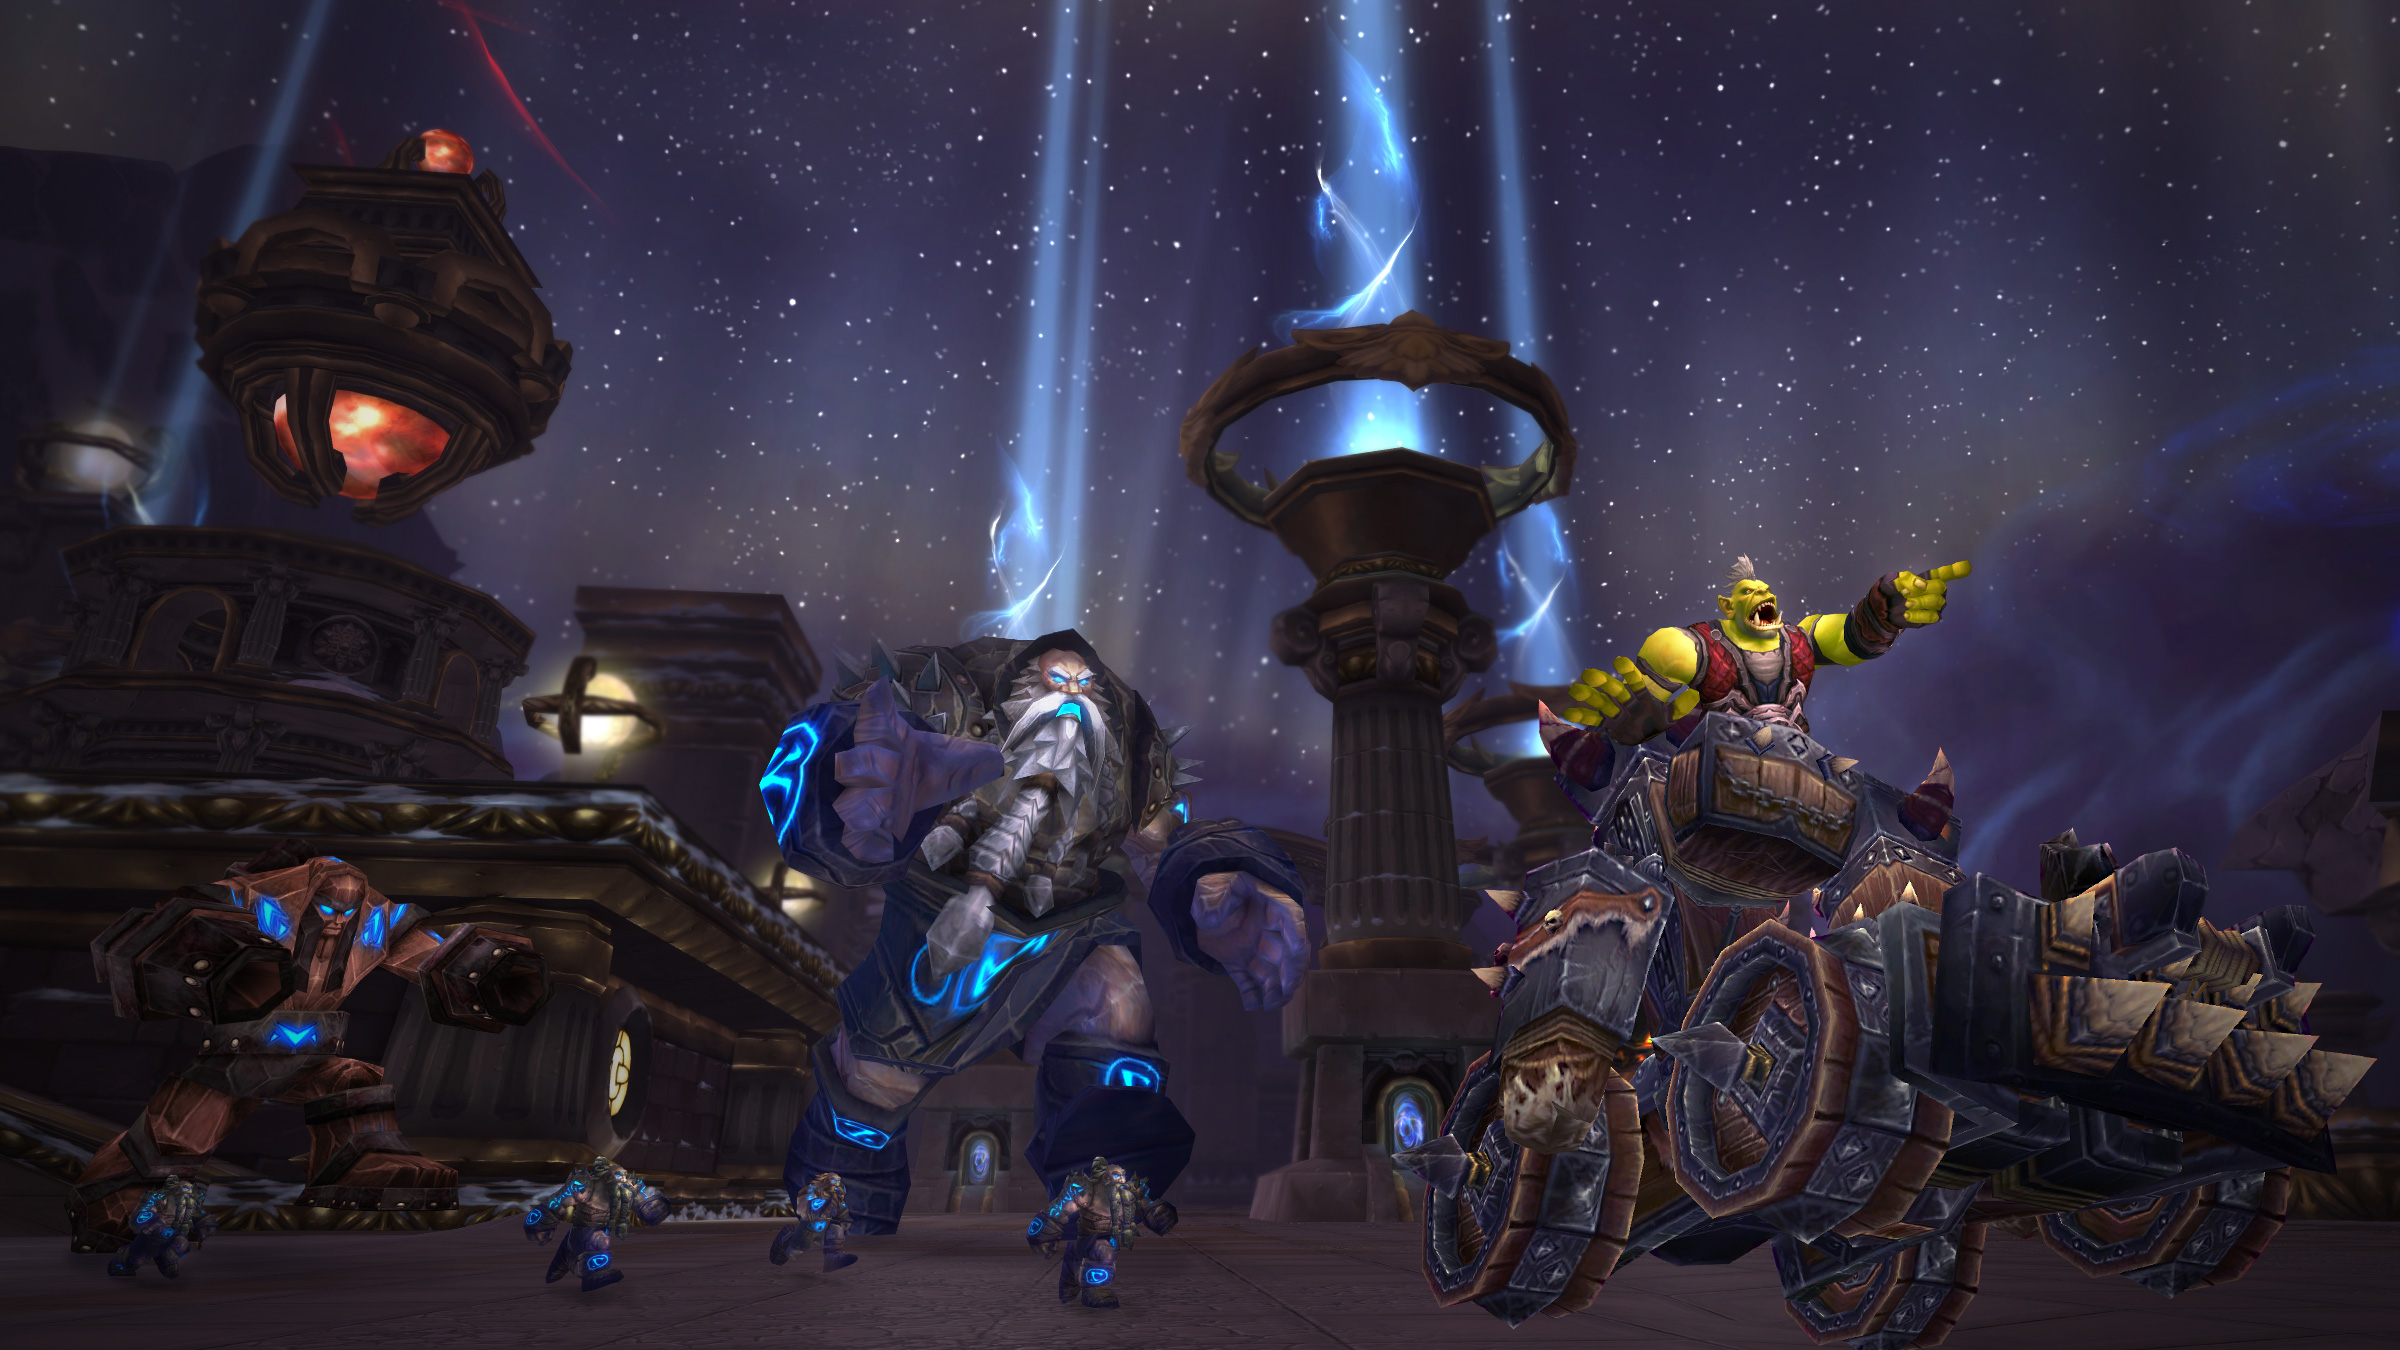 Wrath of the Lich King Timewalking Returns—December 30-January 5